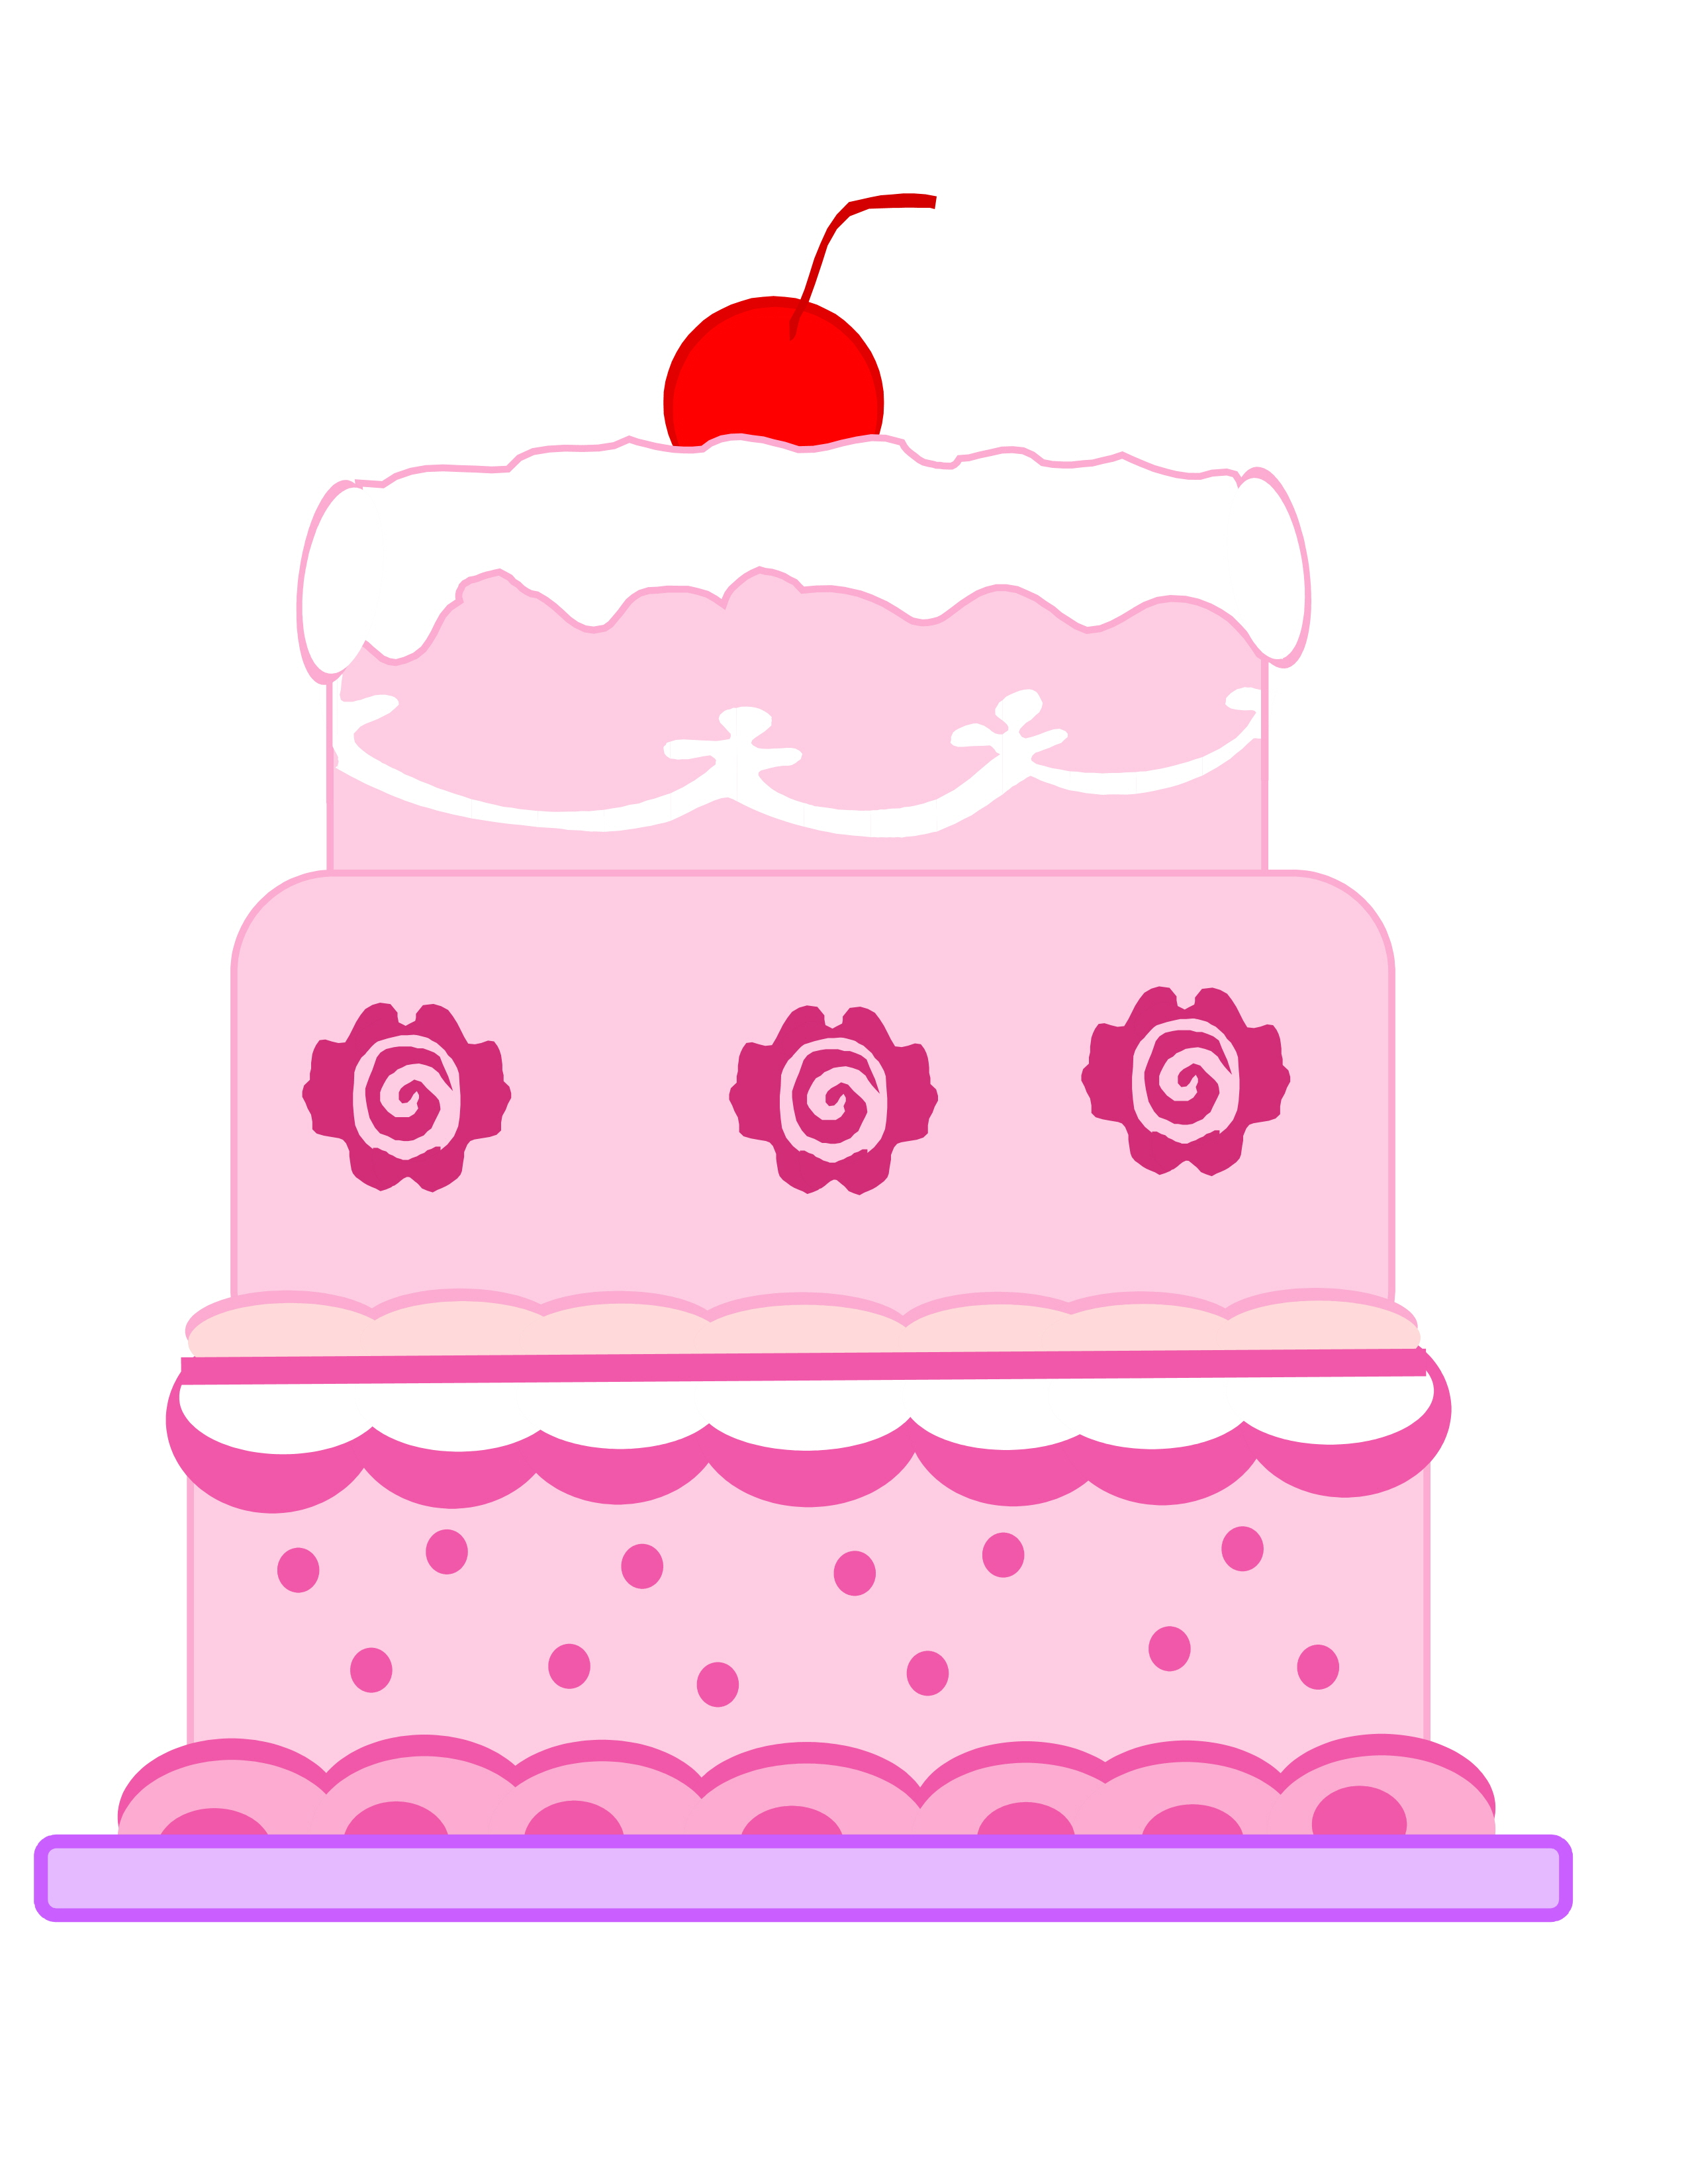 Simple Cake Clipart : Animated Cake Clipart - Clipart Suggest